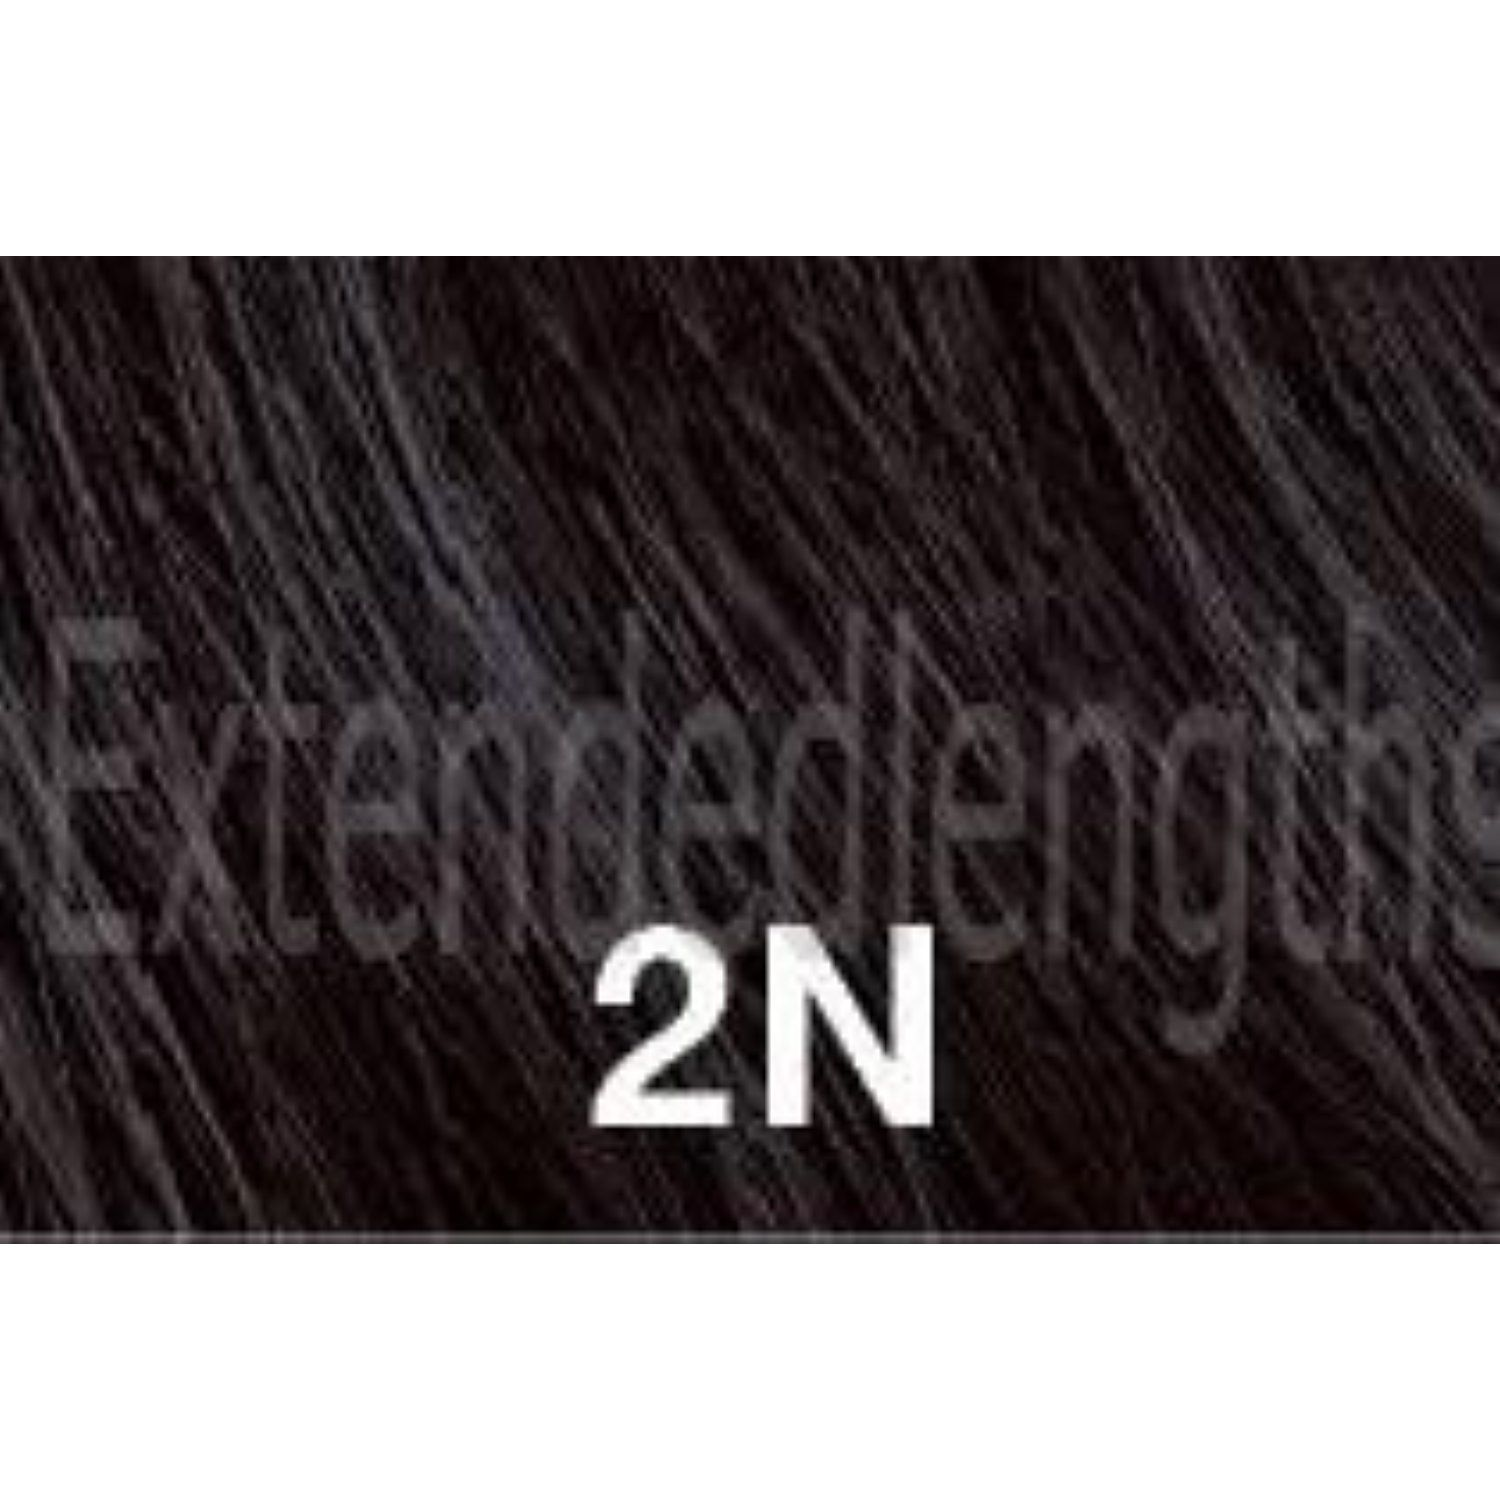 Redken Chromatics Permanent Hair Color 2n Check Out The Image